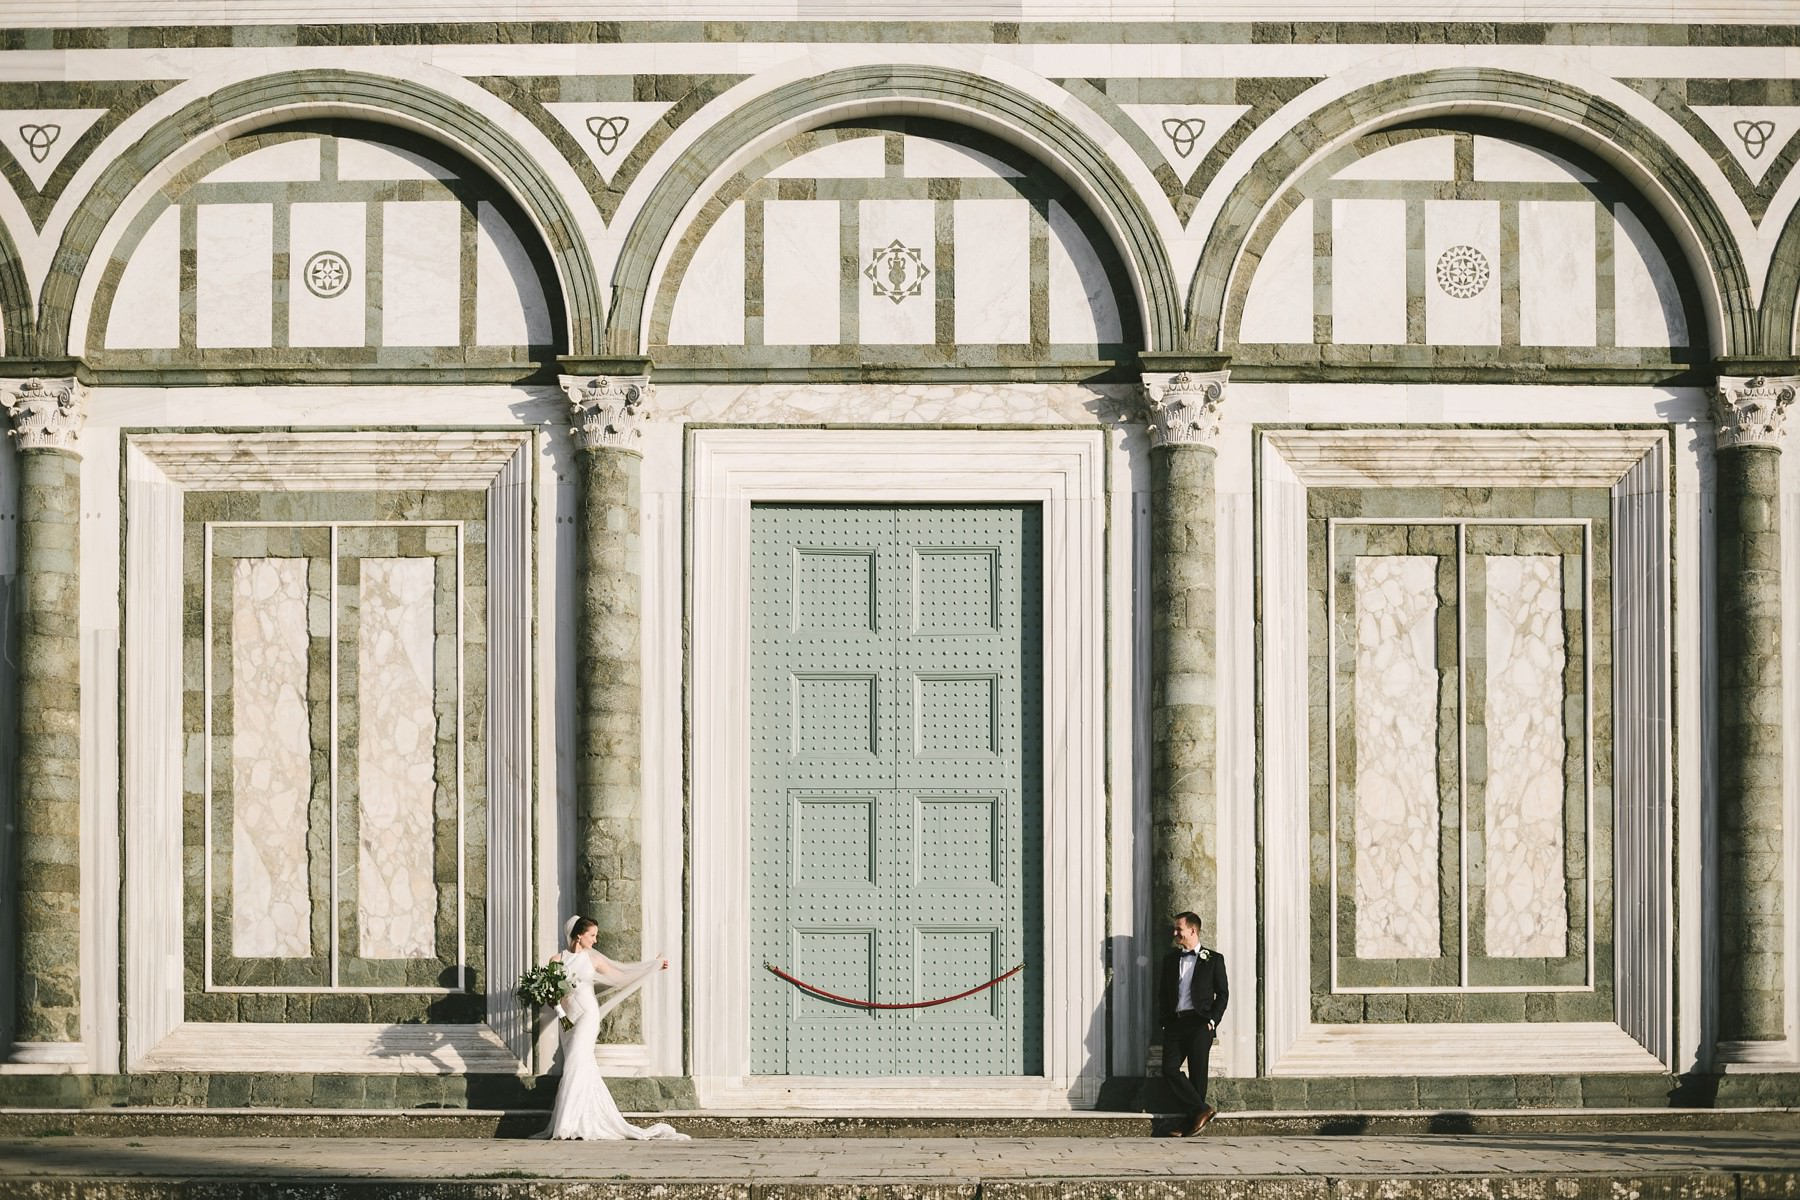 Bride and groom classic portrait in Florence